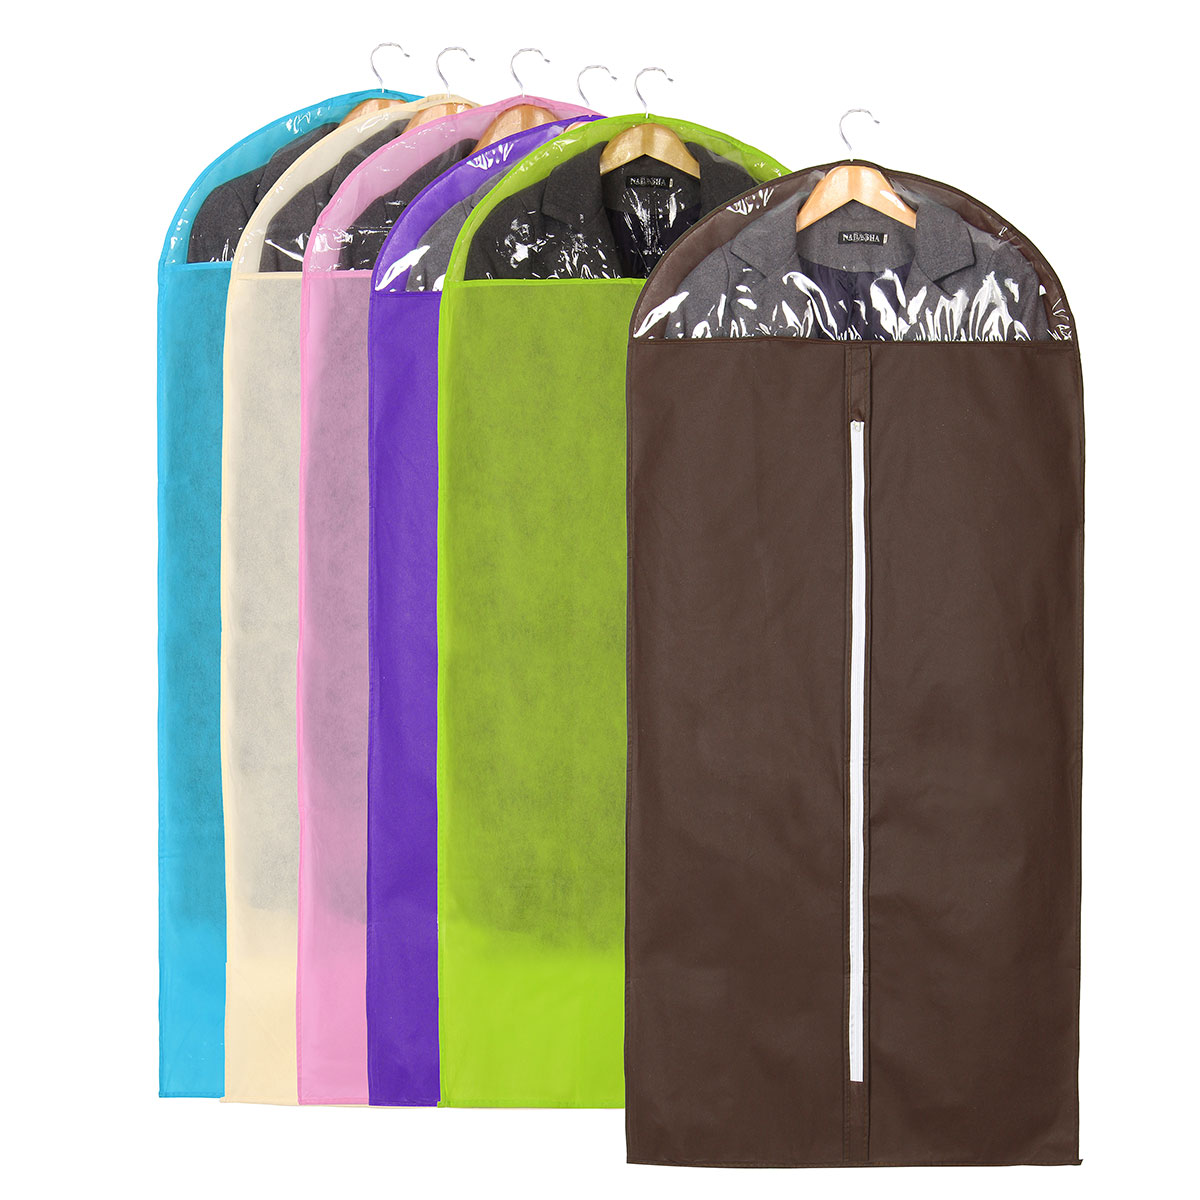 Non Woven Fabric Garment Storage Bag Dress Jacket Clothes Coat Suit Dustproof Cover Protector Travel Bag Household Storing Tools(China (Mainland))